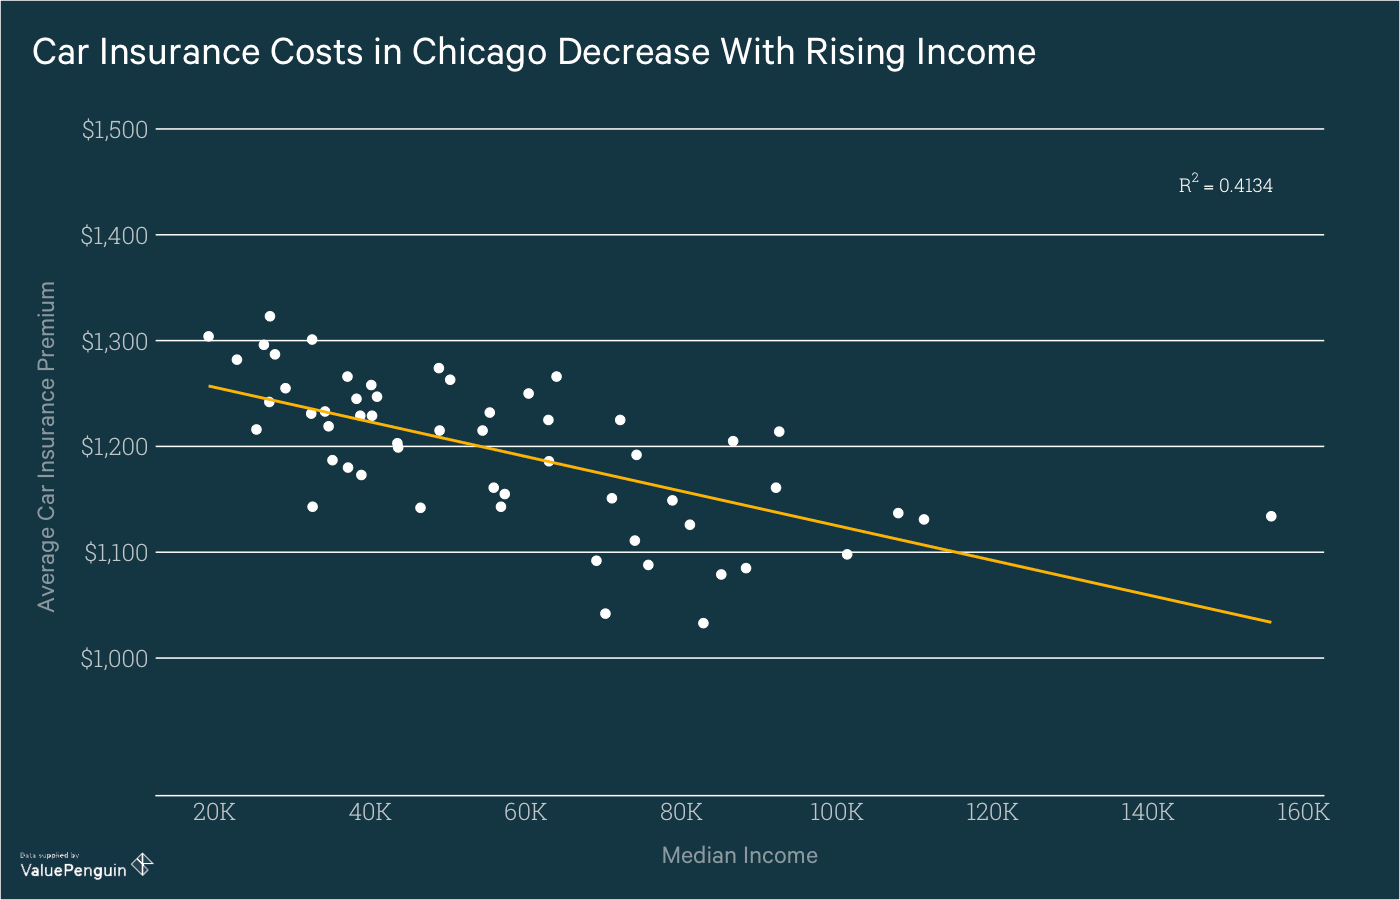 Graph shows the correlation between median income and car insurance cost in Chicago